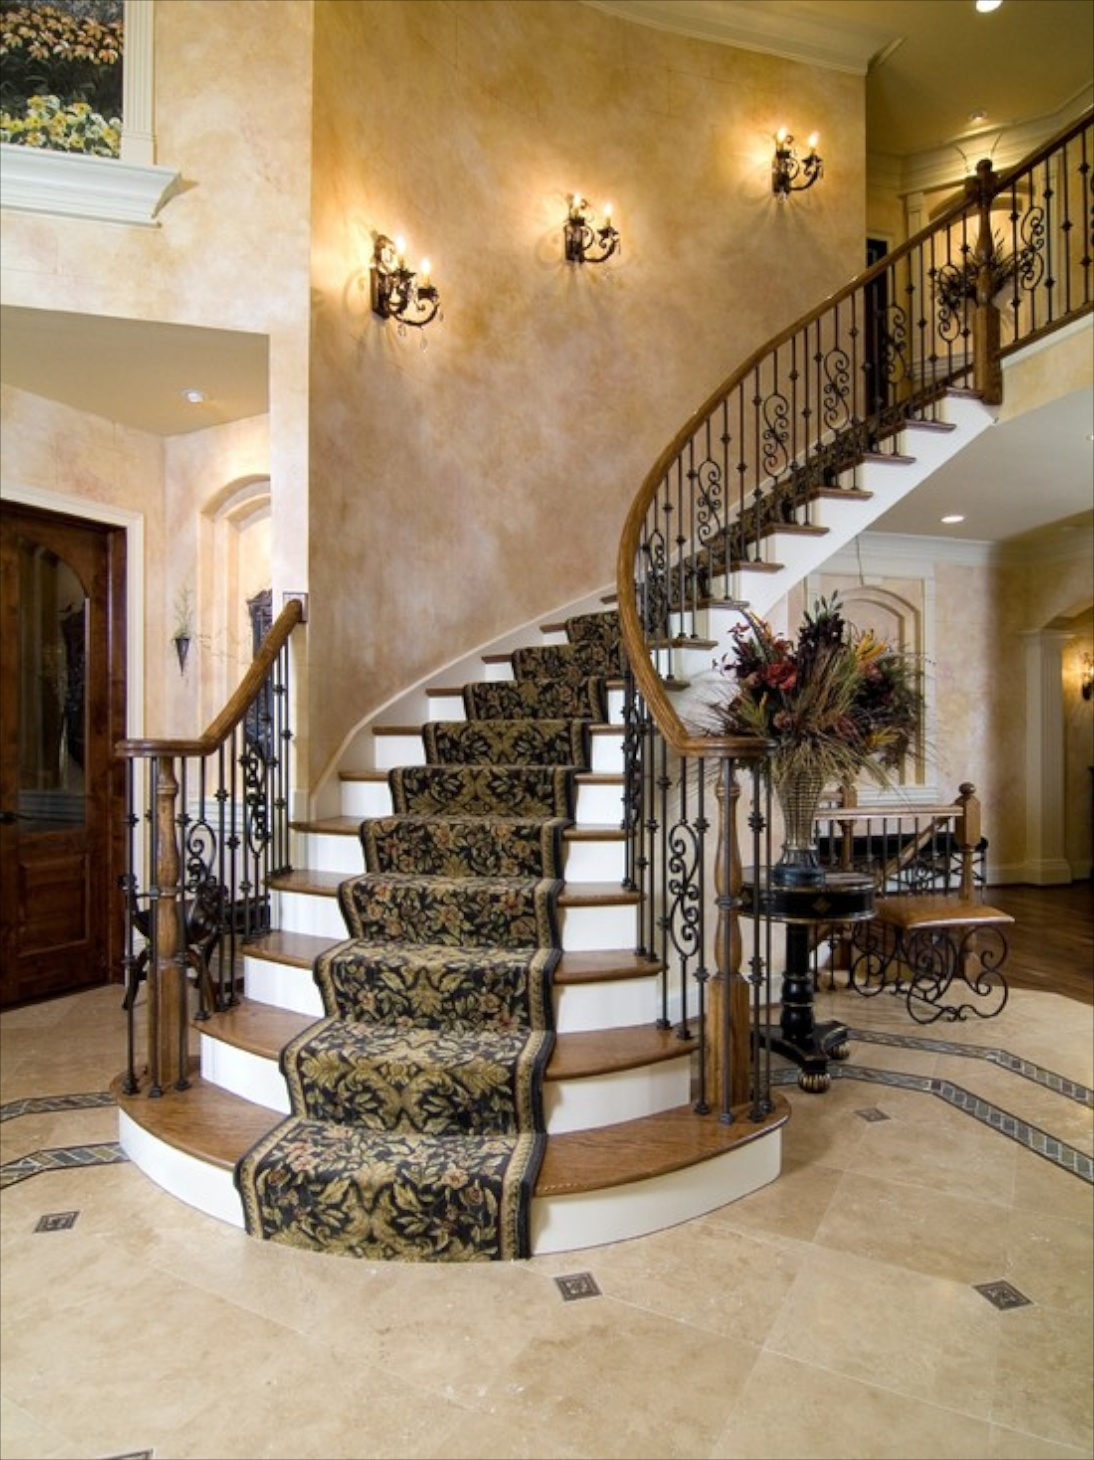 Add a description for Home designer stairs with landing